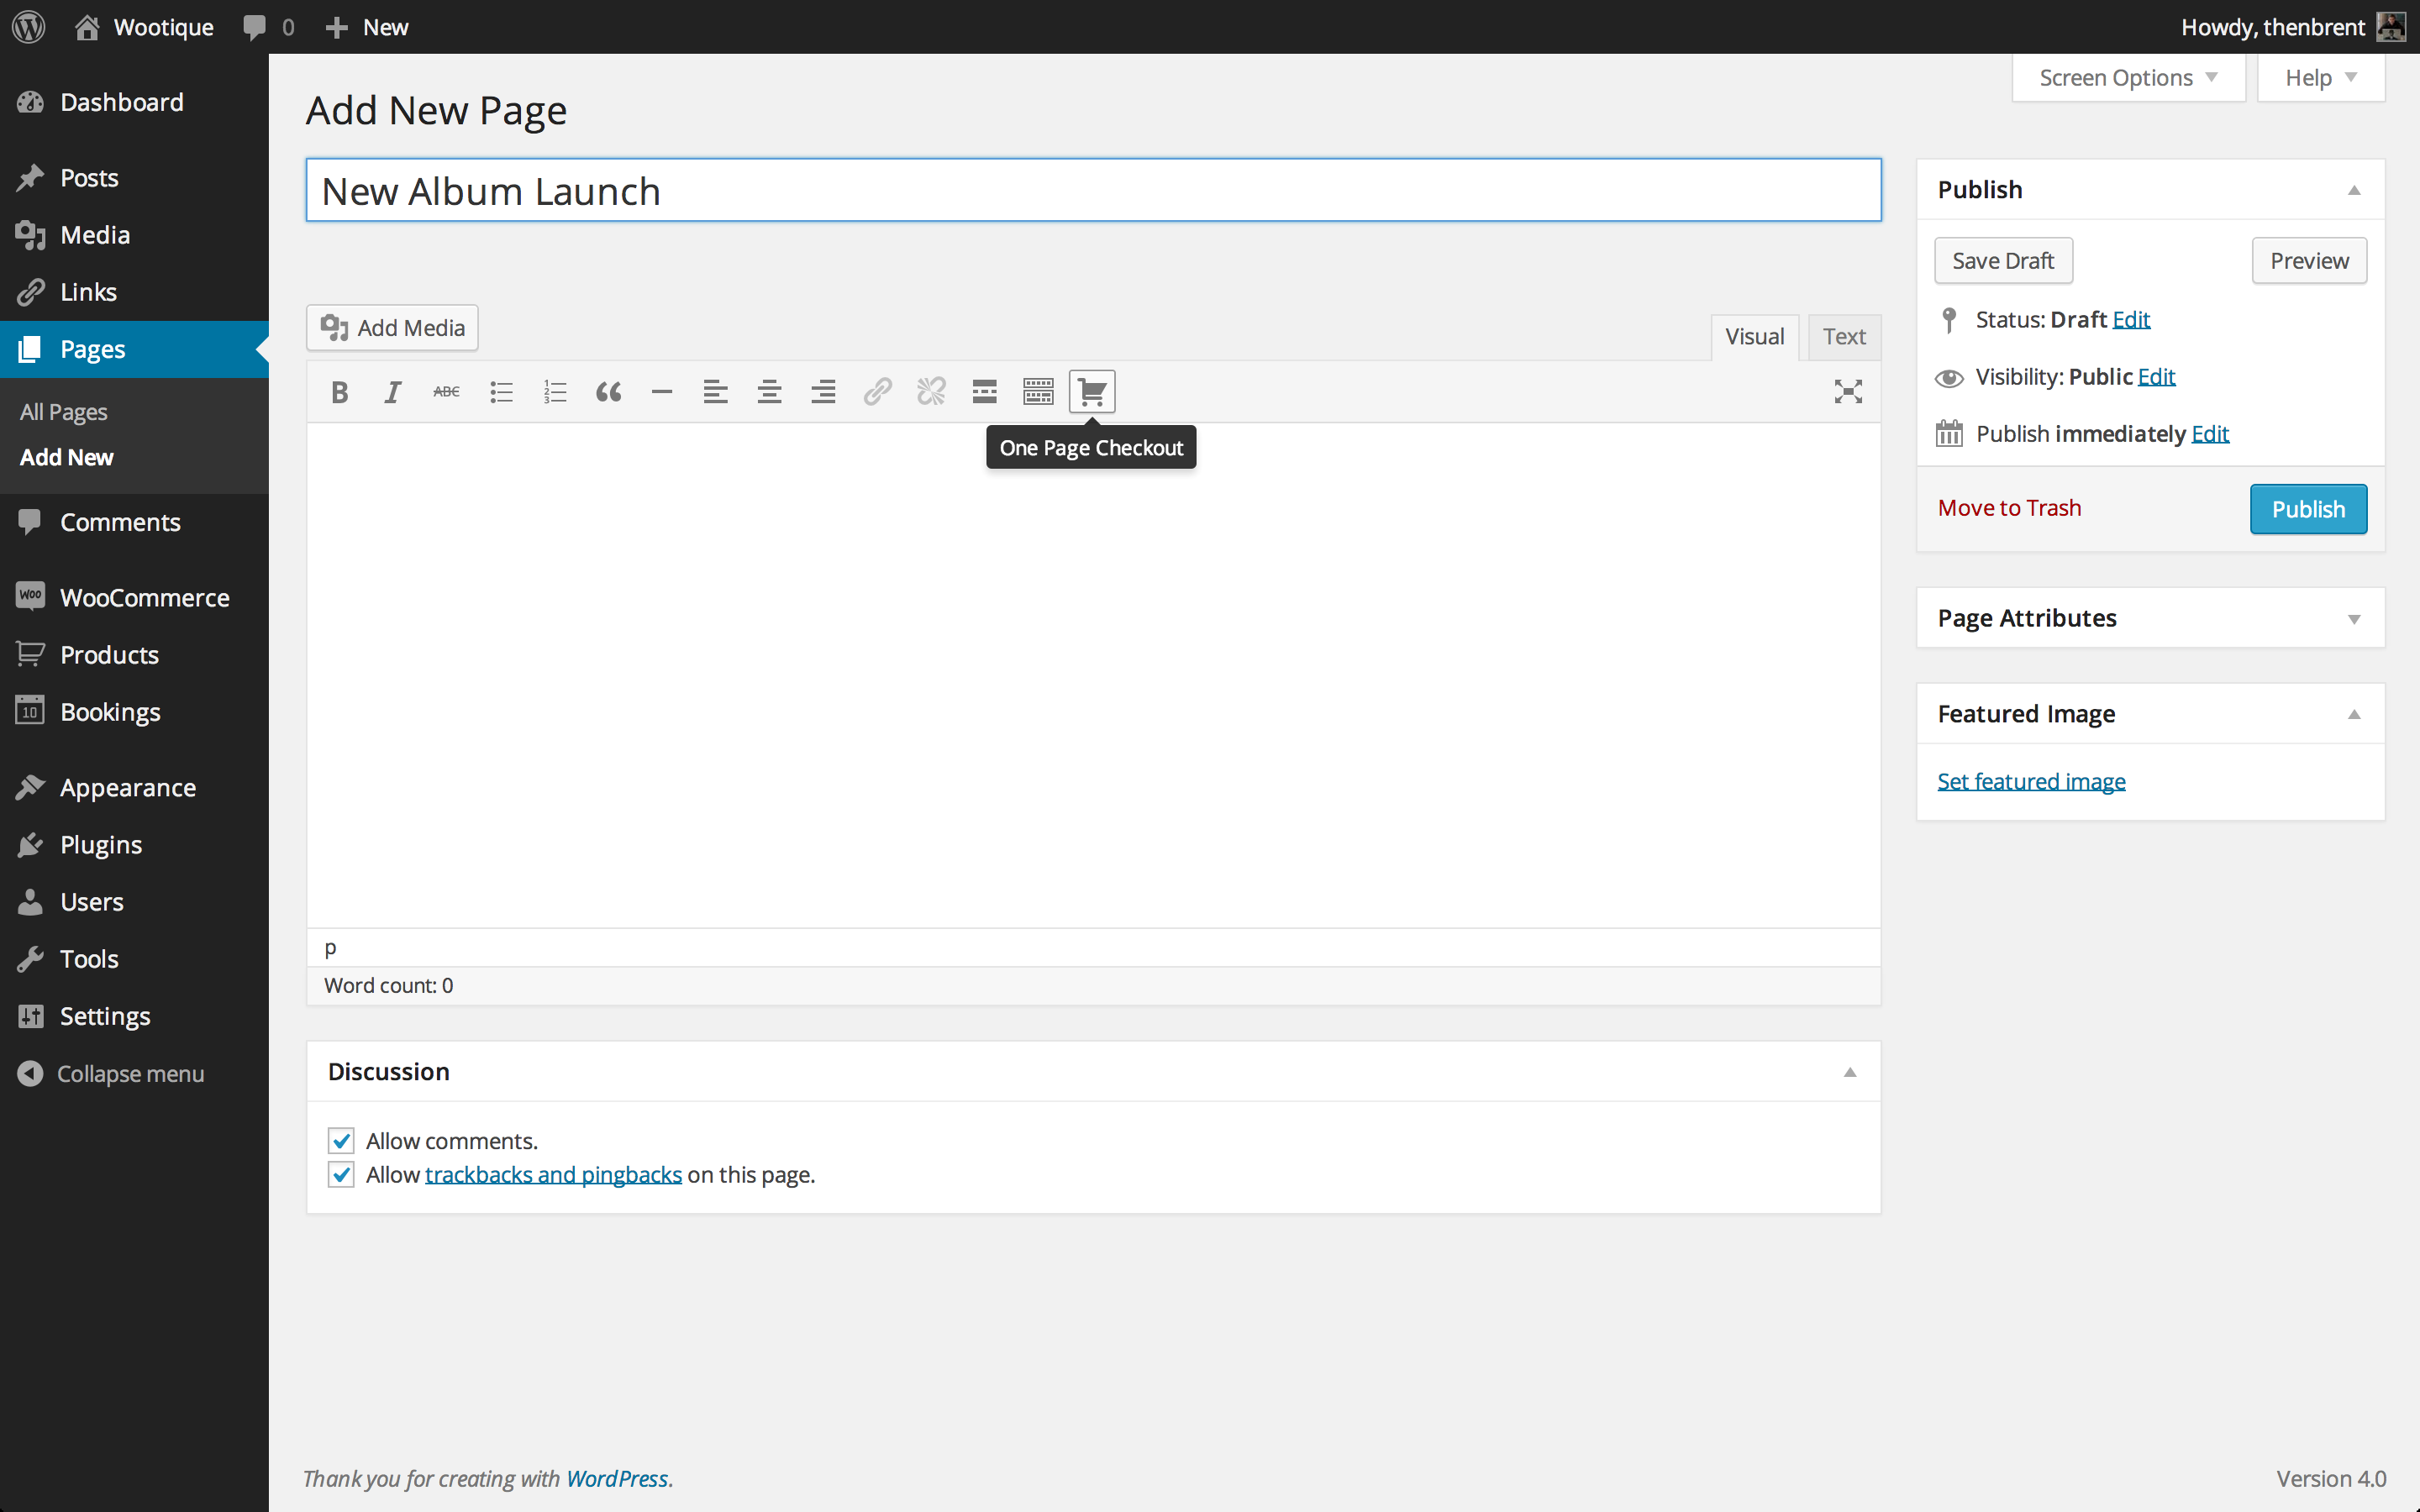 One Page Checkout Visual Editor Icon